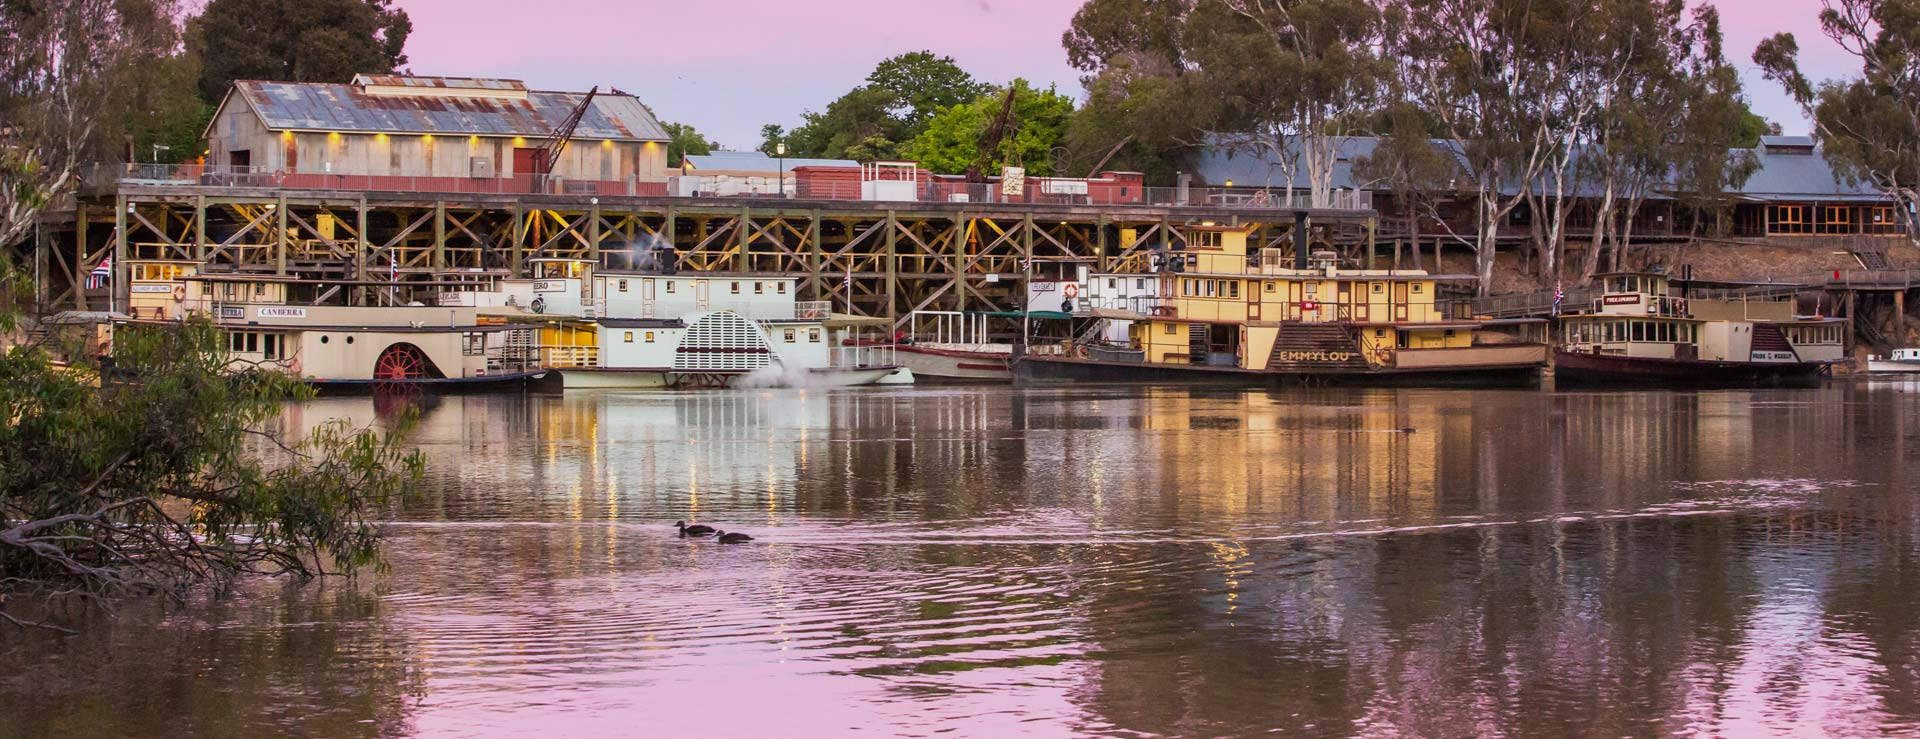 The Port of Echuca offers a fabulous day out for the whole family